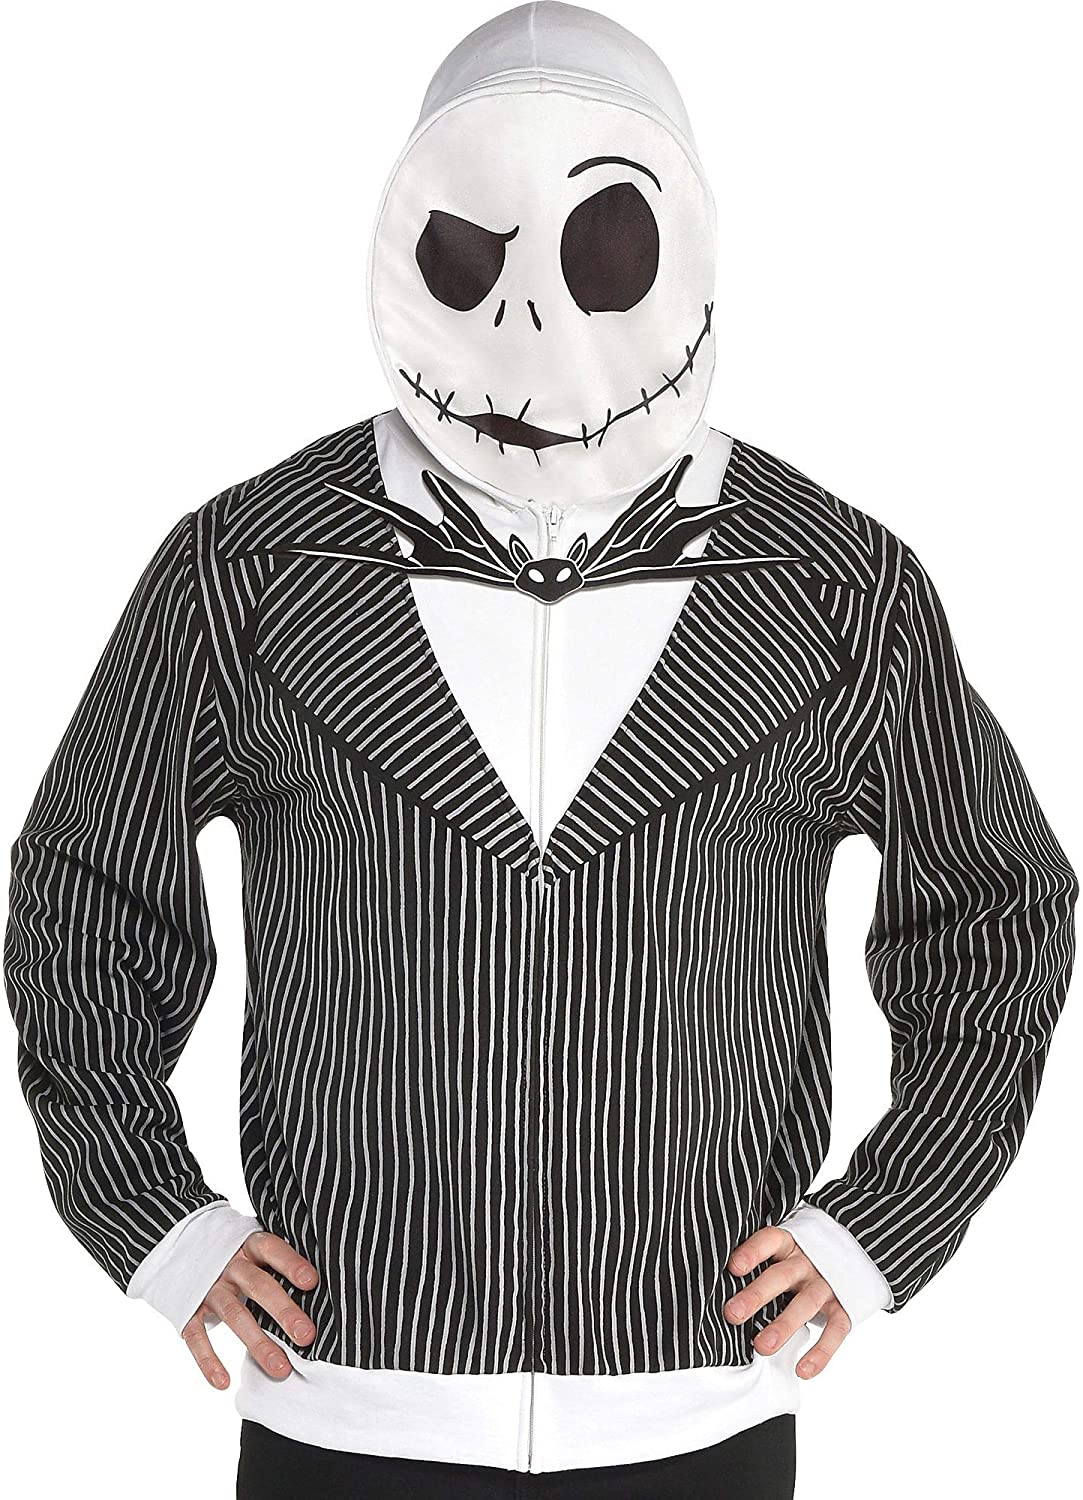 Party City The Nightmare Before Christmas Jack Skellington Hoodie for Men, Large/Extra Large